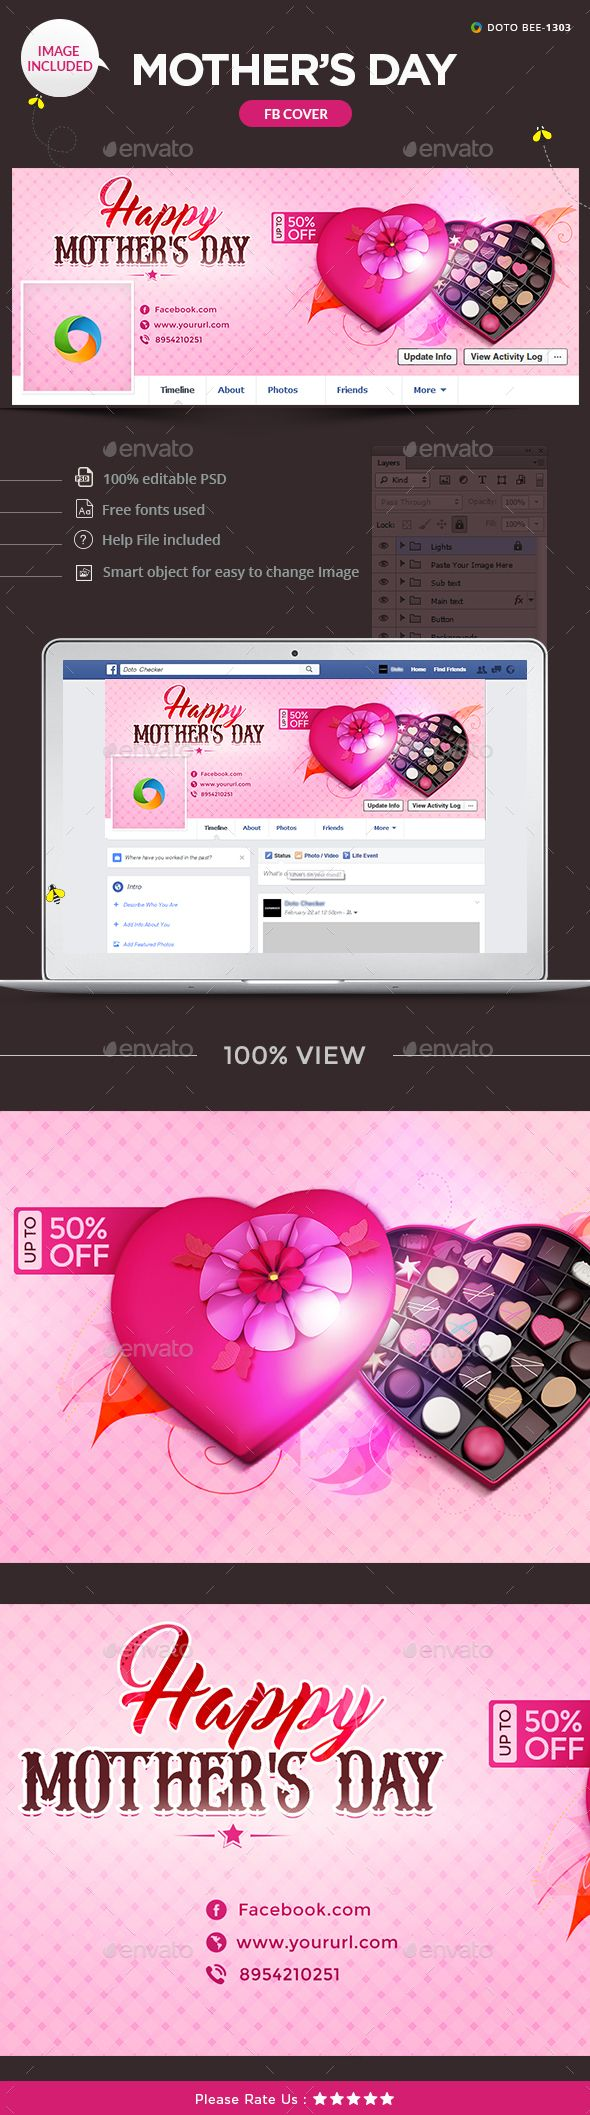 Mother\'s Day Facebook Timeline Cover Template - Download Here : http ...